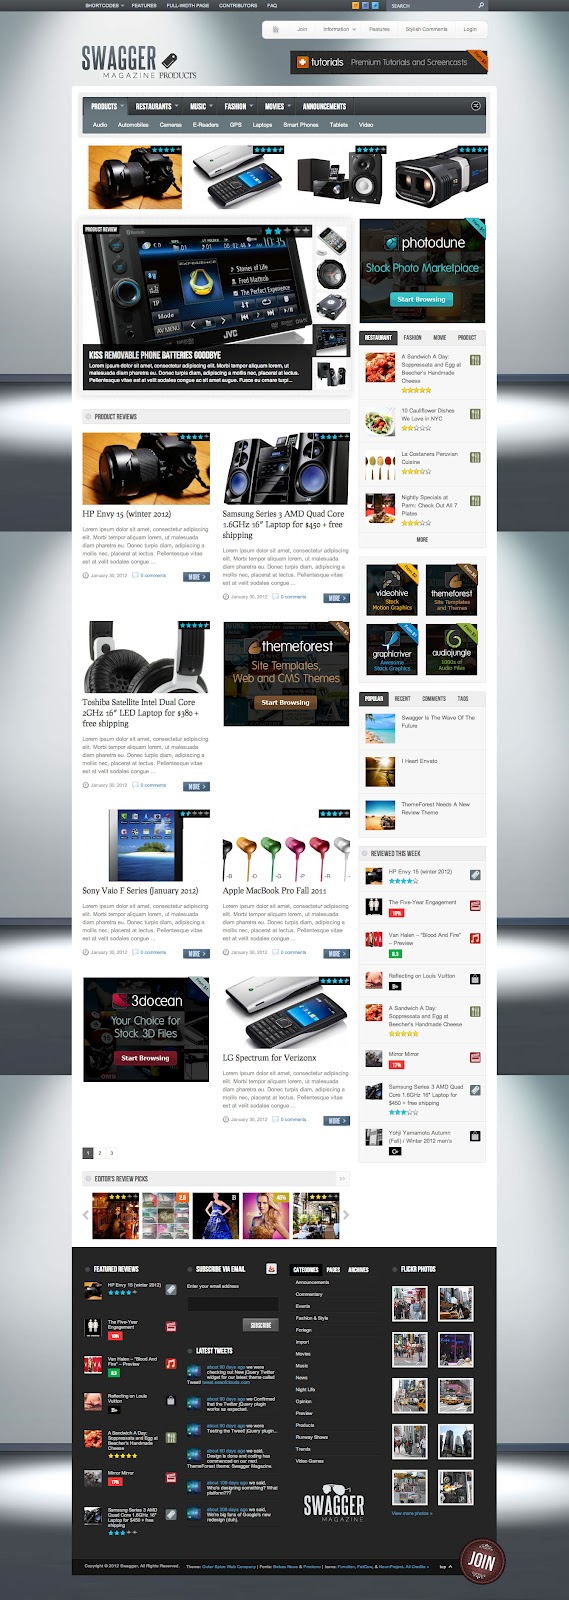 Best-SwagMag-Magazine-Review-Theme